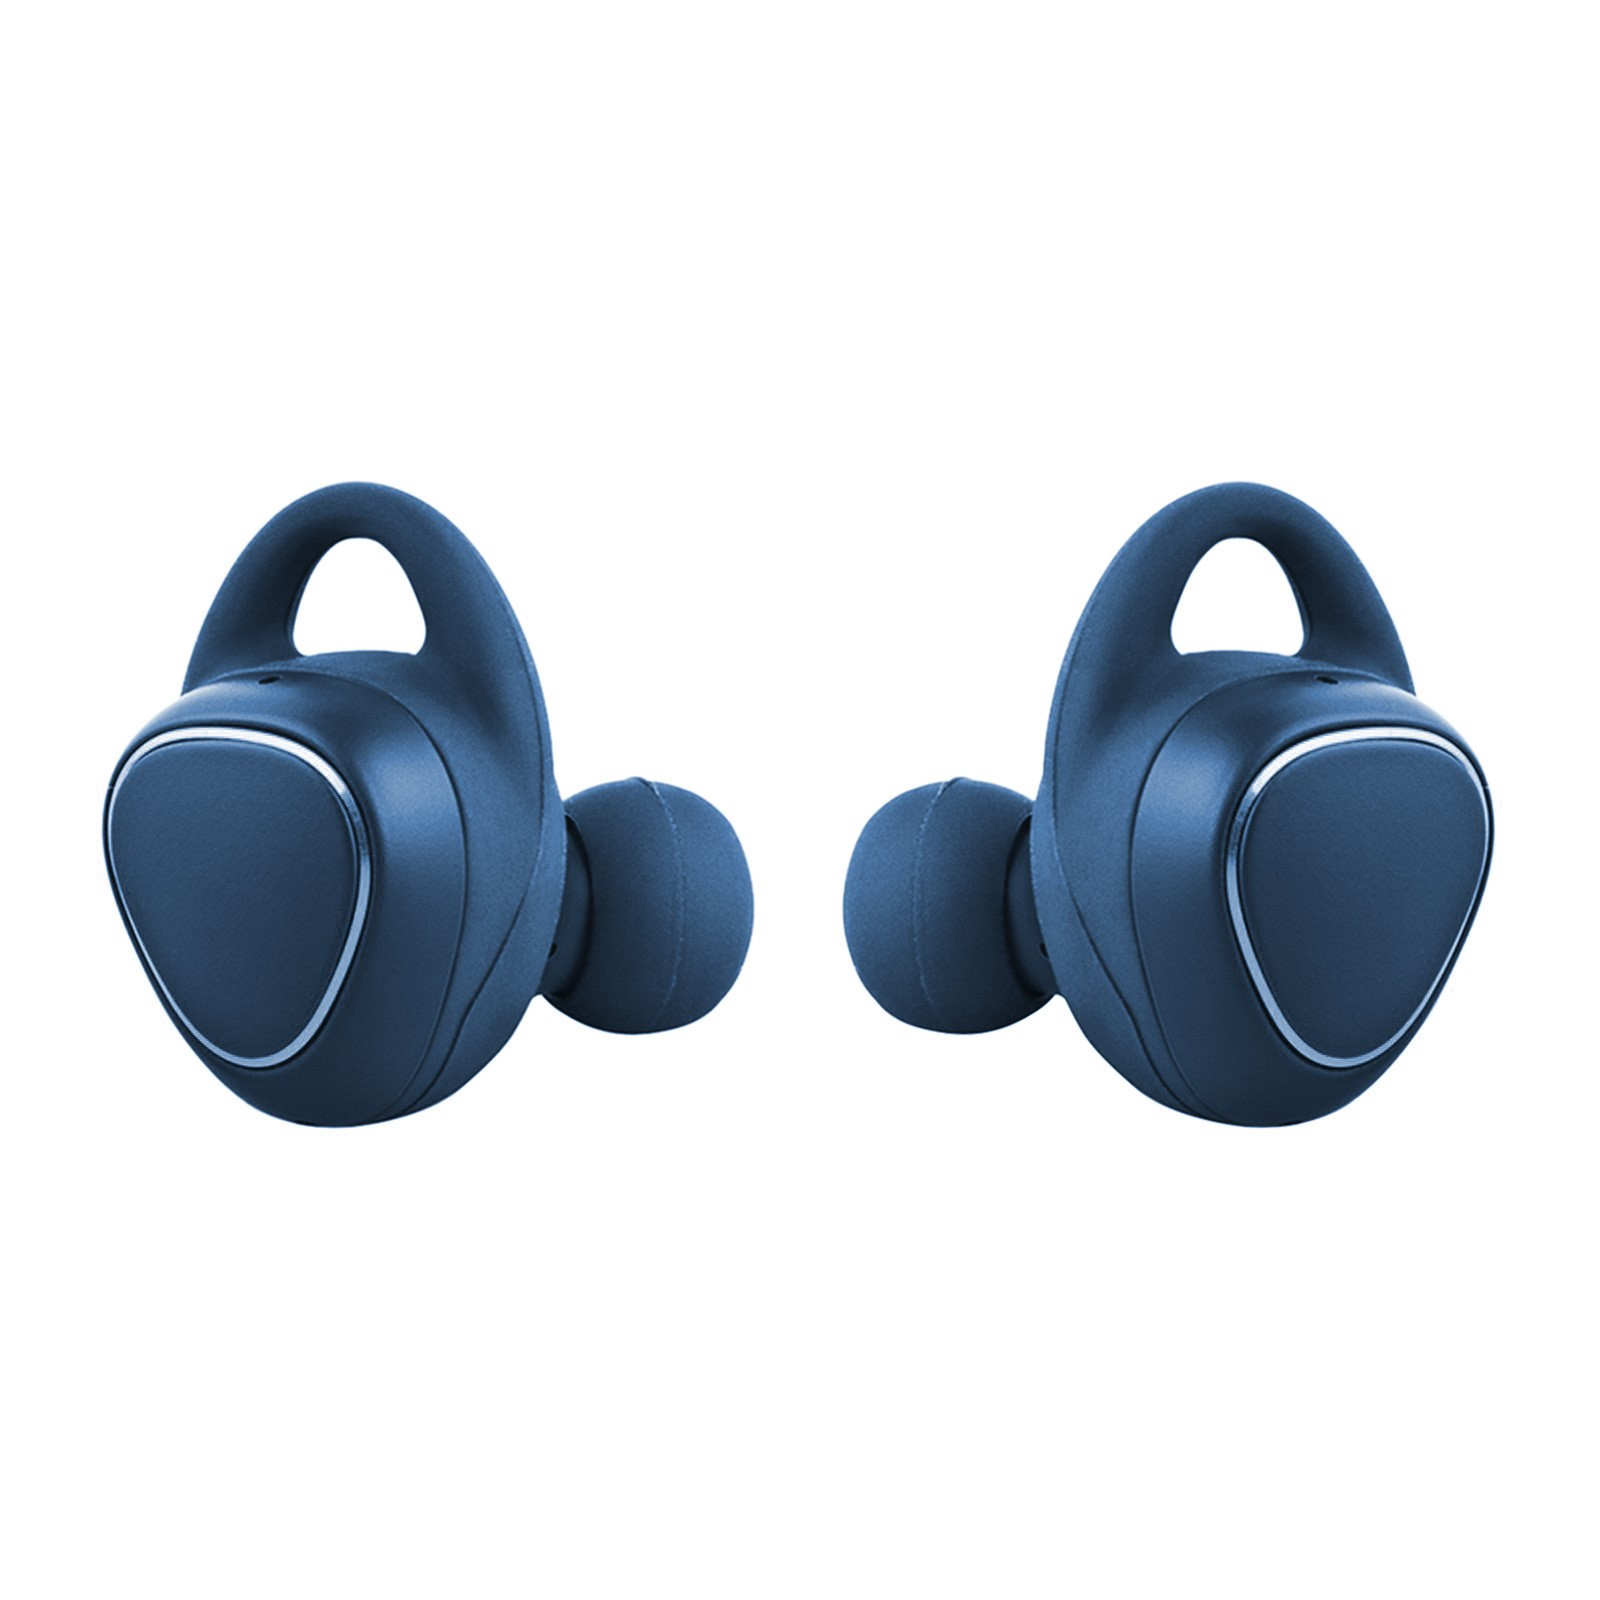 Samsung Gear IconX Cordfree Fitness Earbuds with Activity Tracker (Blue) SAM-ICONX-BL-B1